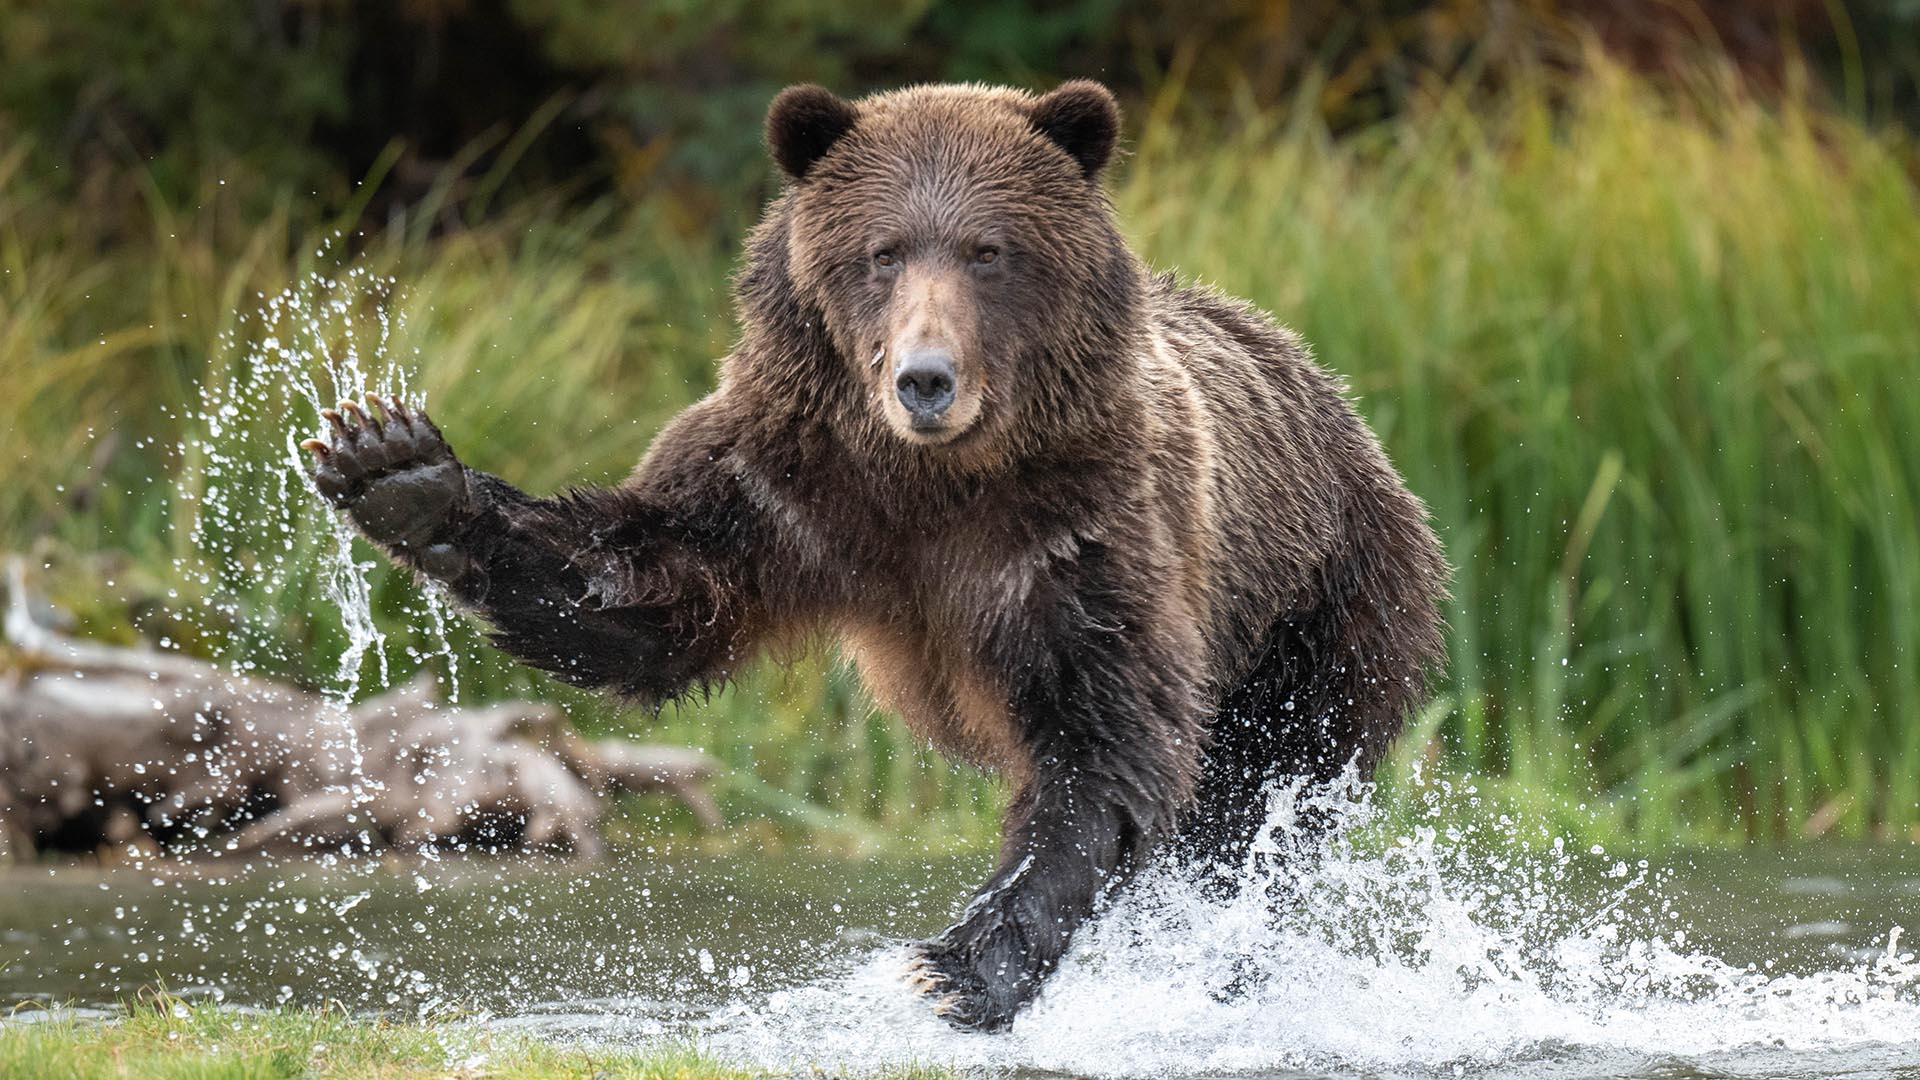 How to avoid bear confrontations in the backcountry